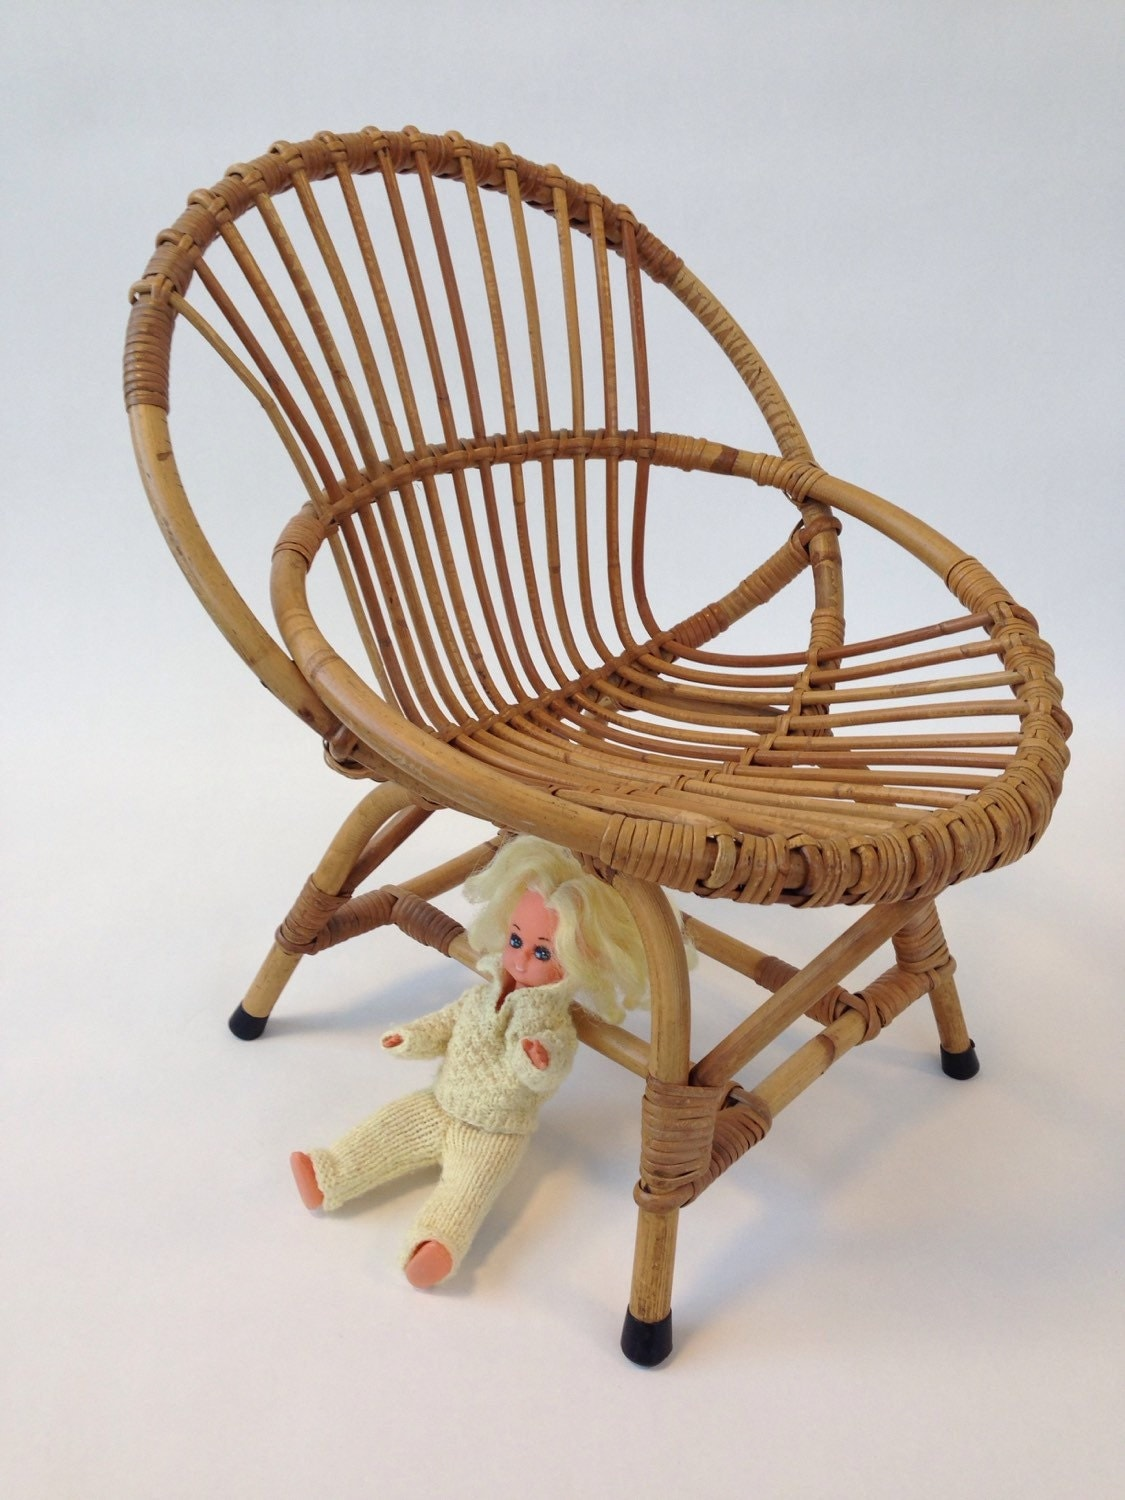 Vtg cute toddler 39 s chair rattan bamboo frame rohe for Cute toddler chairs